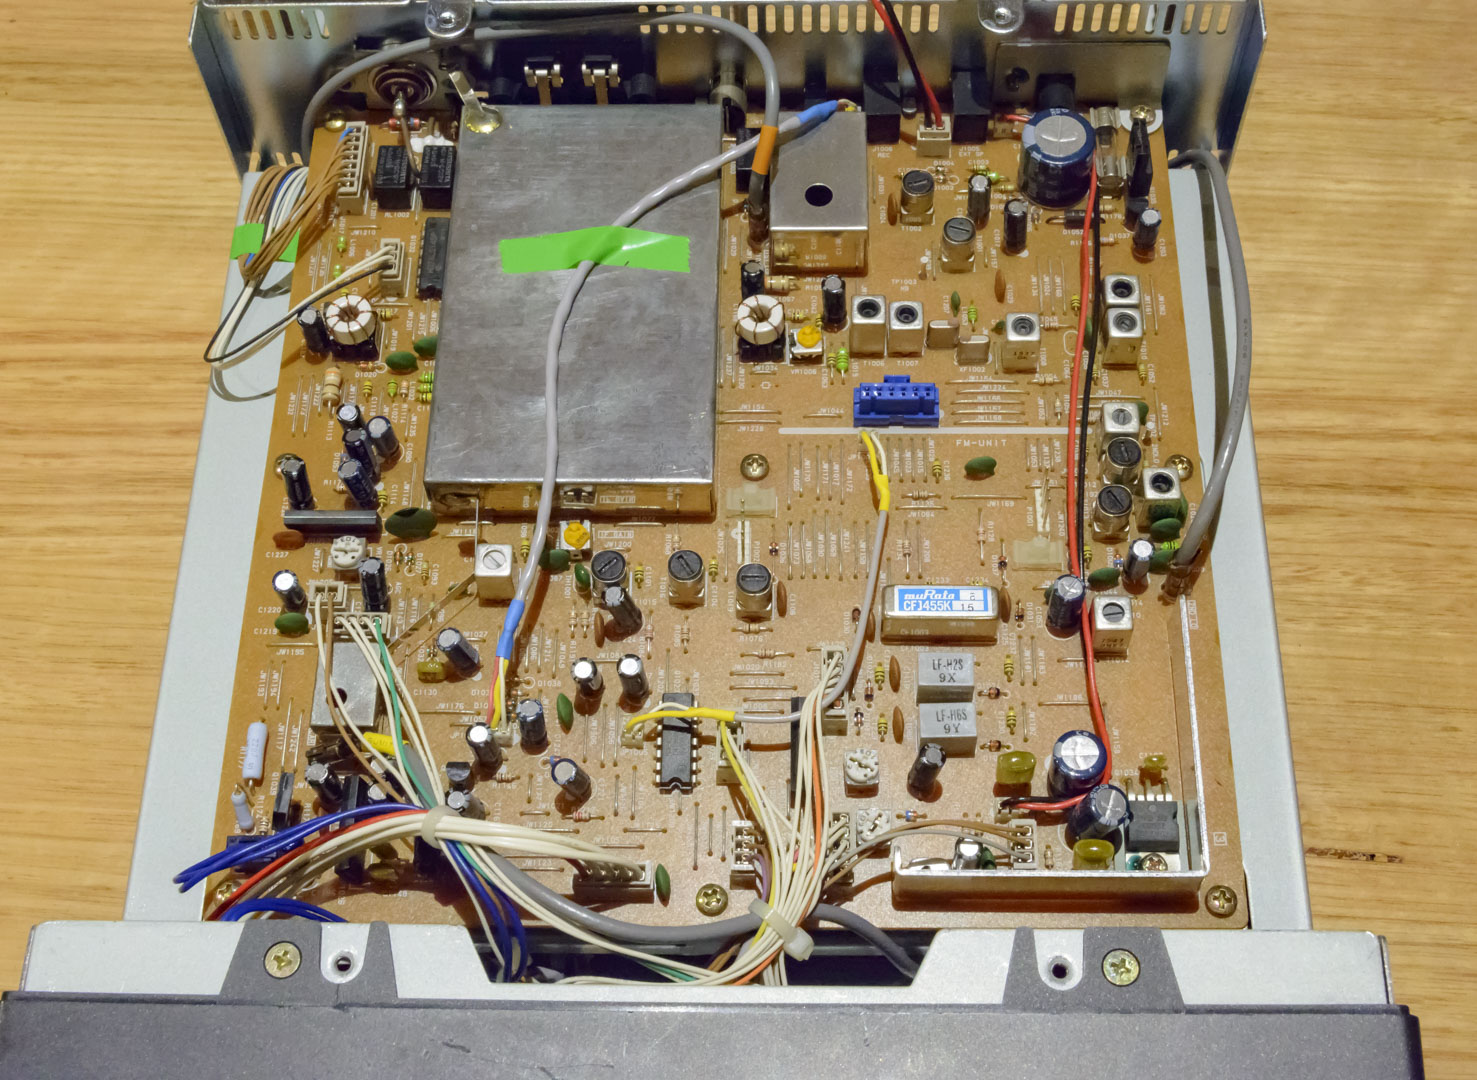 Retro Receiver Review 12 The Yaesu Frg 100 Mount Evelyn Dx Report Native Union Belt Cable Lightning Marine 12m Underneath Hood Top Cover Off With Main Board Showing Surface Components Are Soldered To Underside Of This